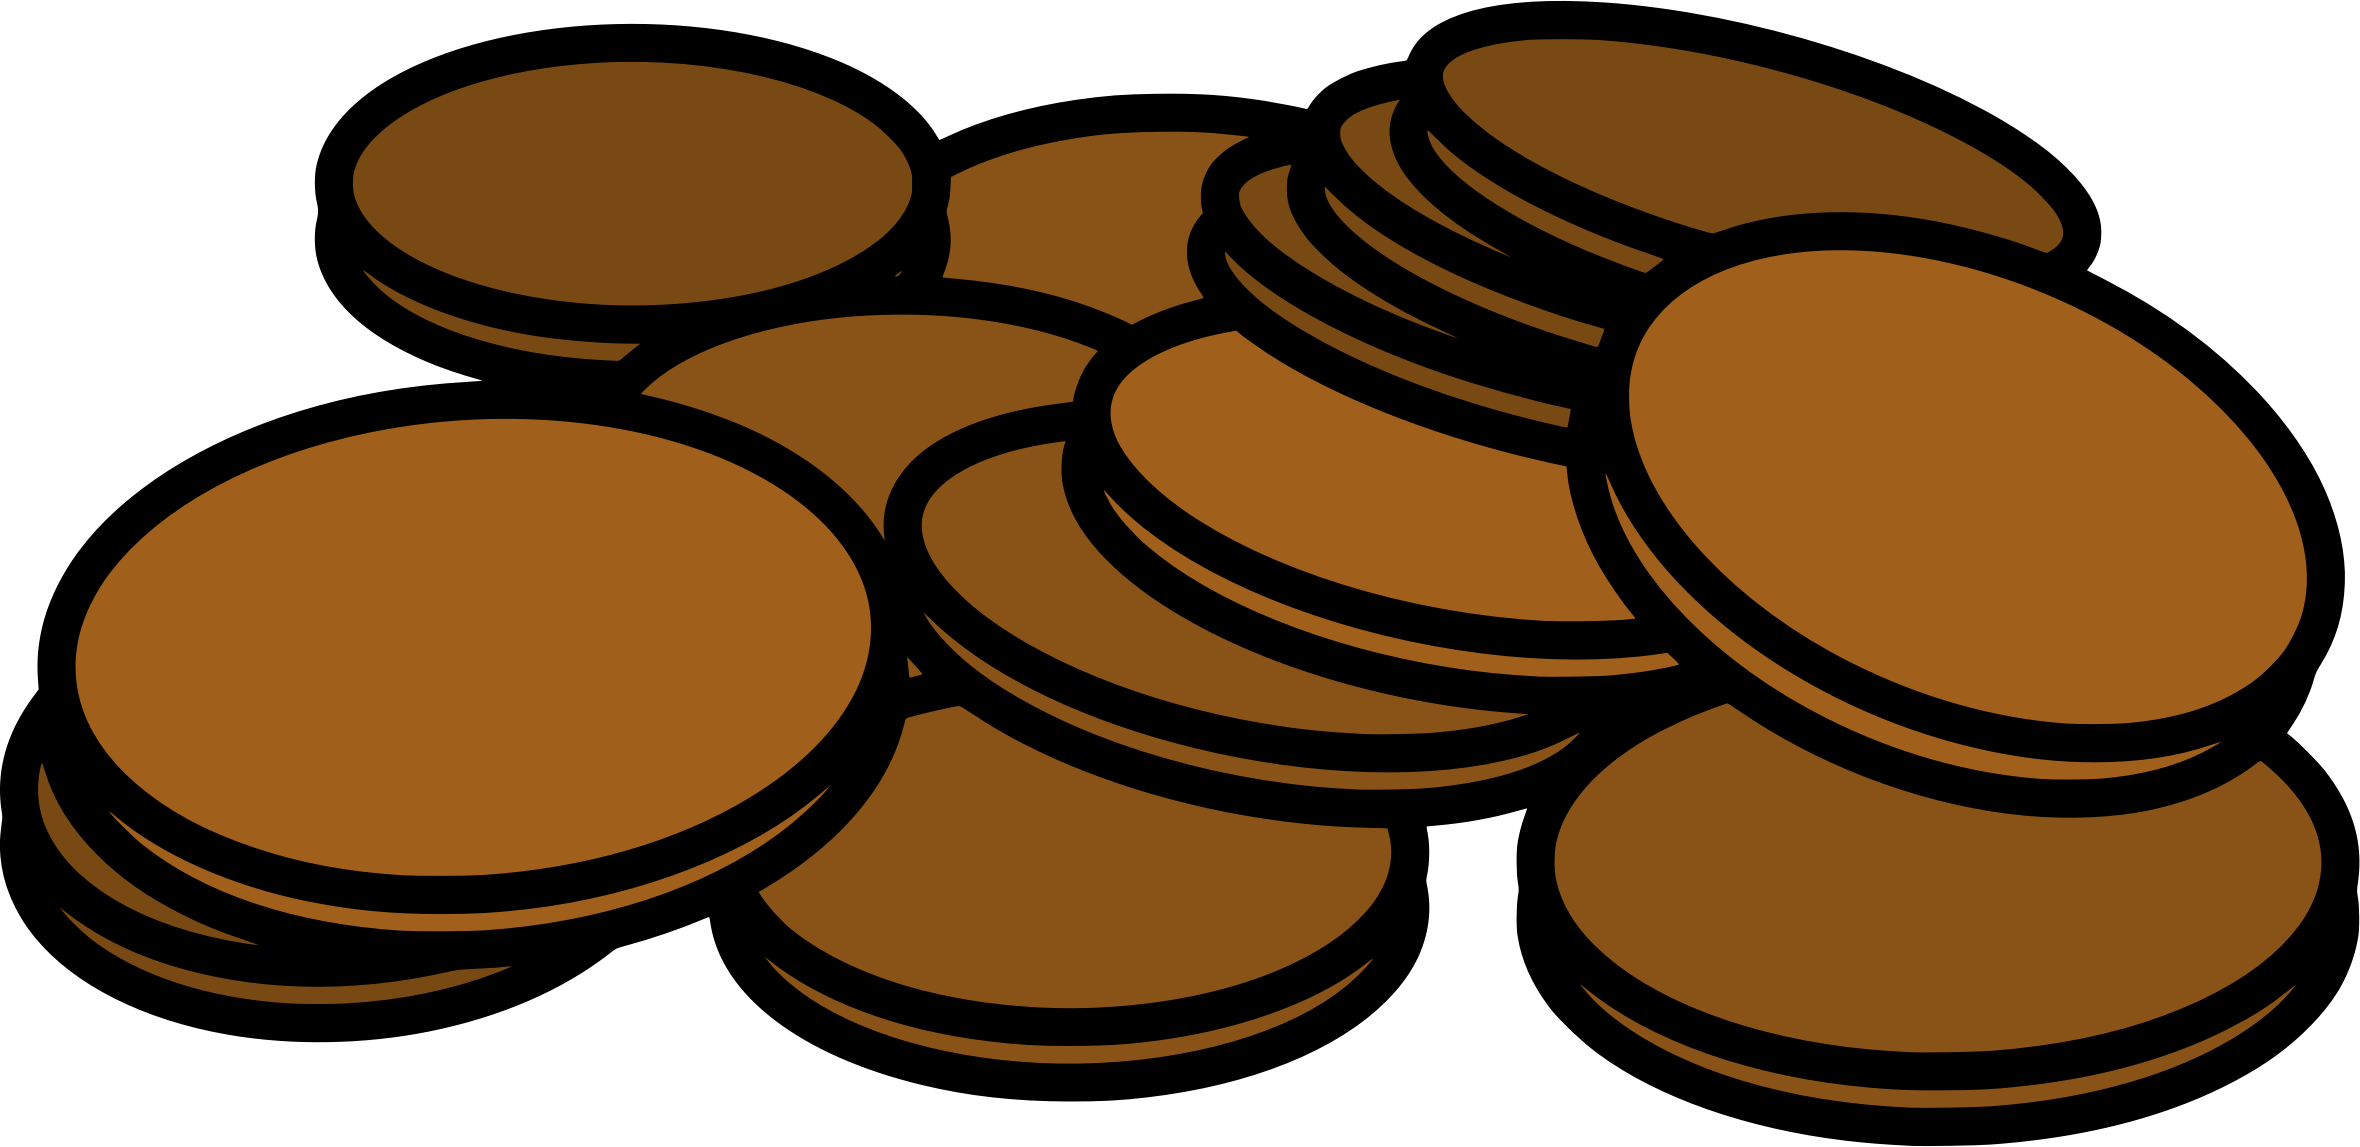 Nickel clipart canadian loonie. Pennies big image png